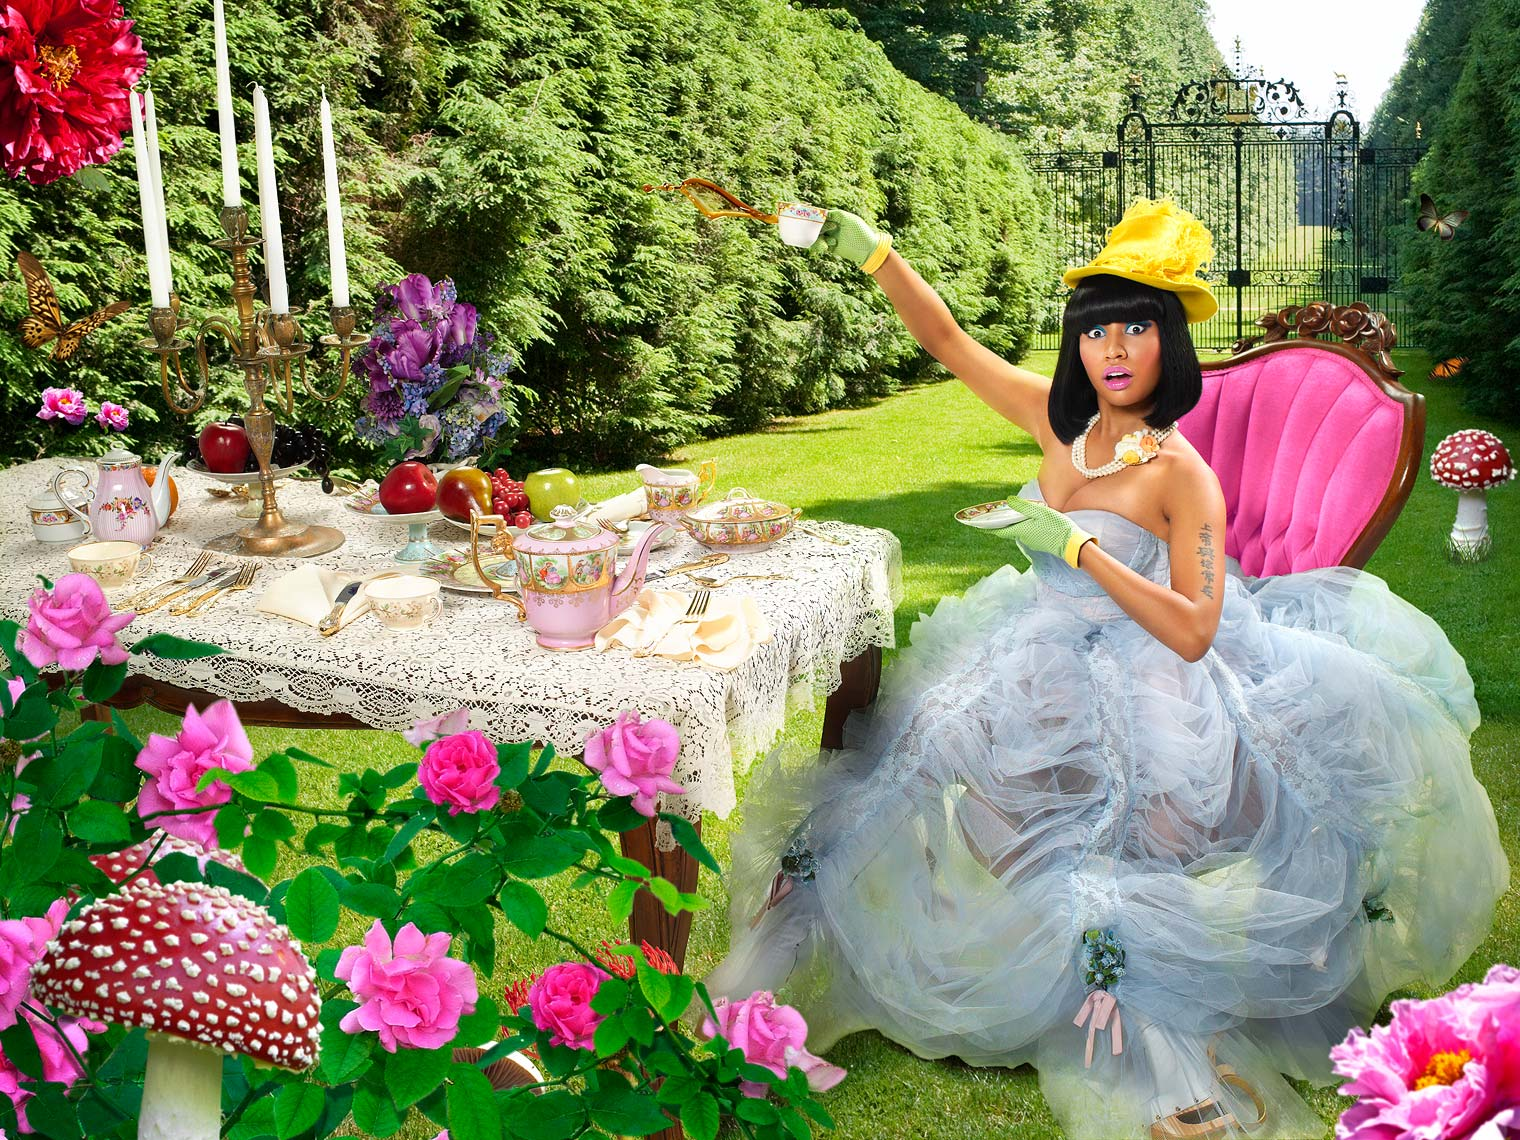 Howard-Huang-NIcki-Minaj-Tea-Party-Wonderland